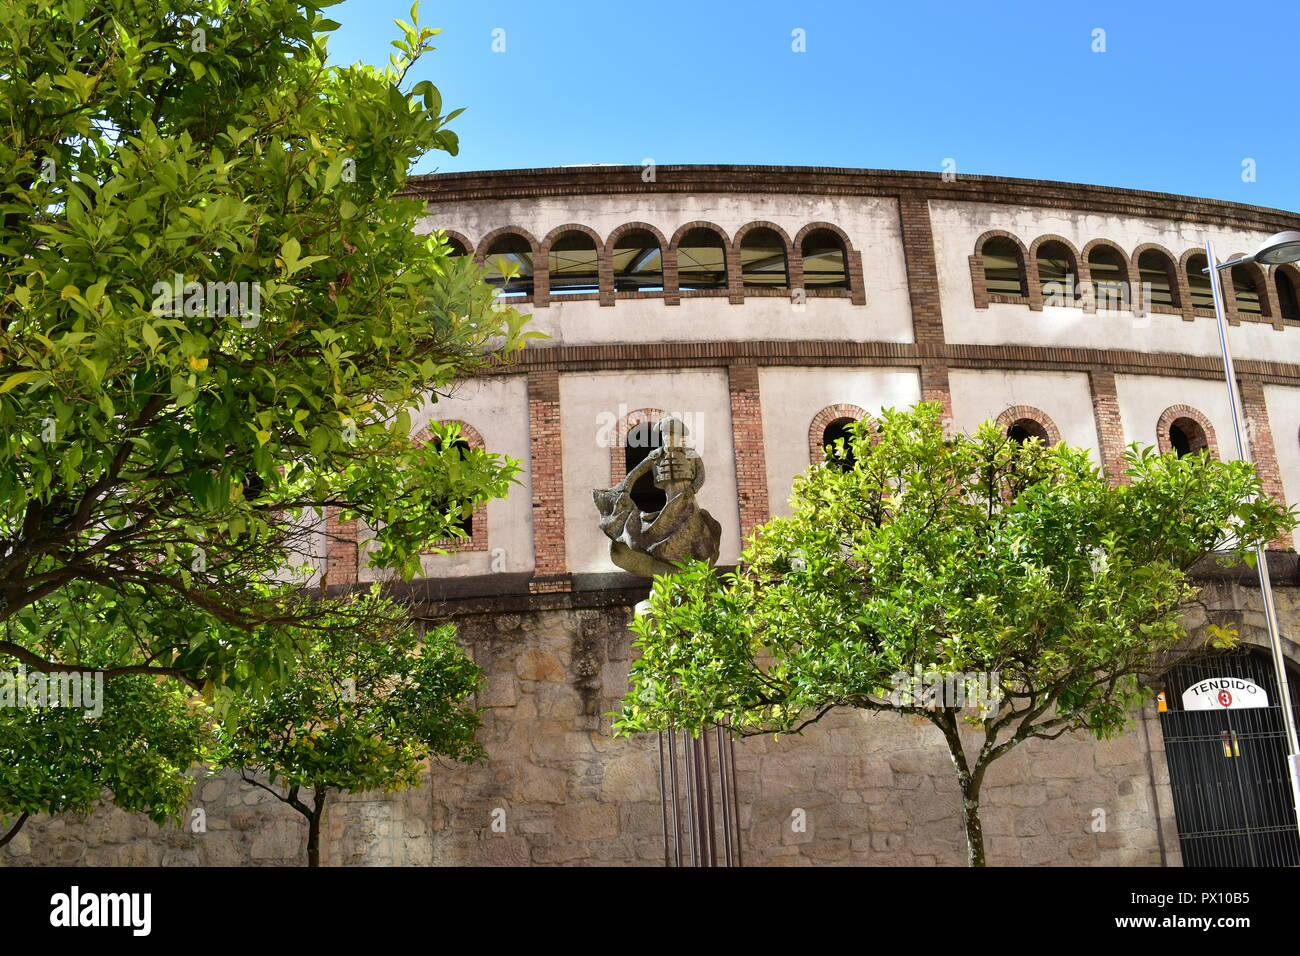 Bullring with torero statue and trees with green leaves. Public park, sunny day, blue sky. Pontevedra, Spain. Stock Photo